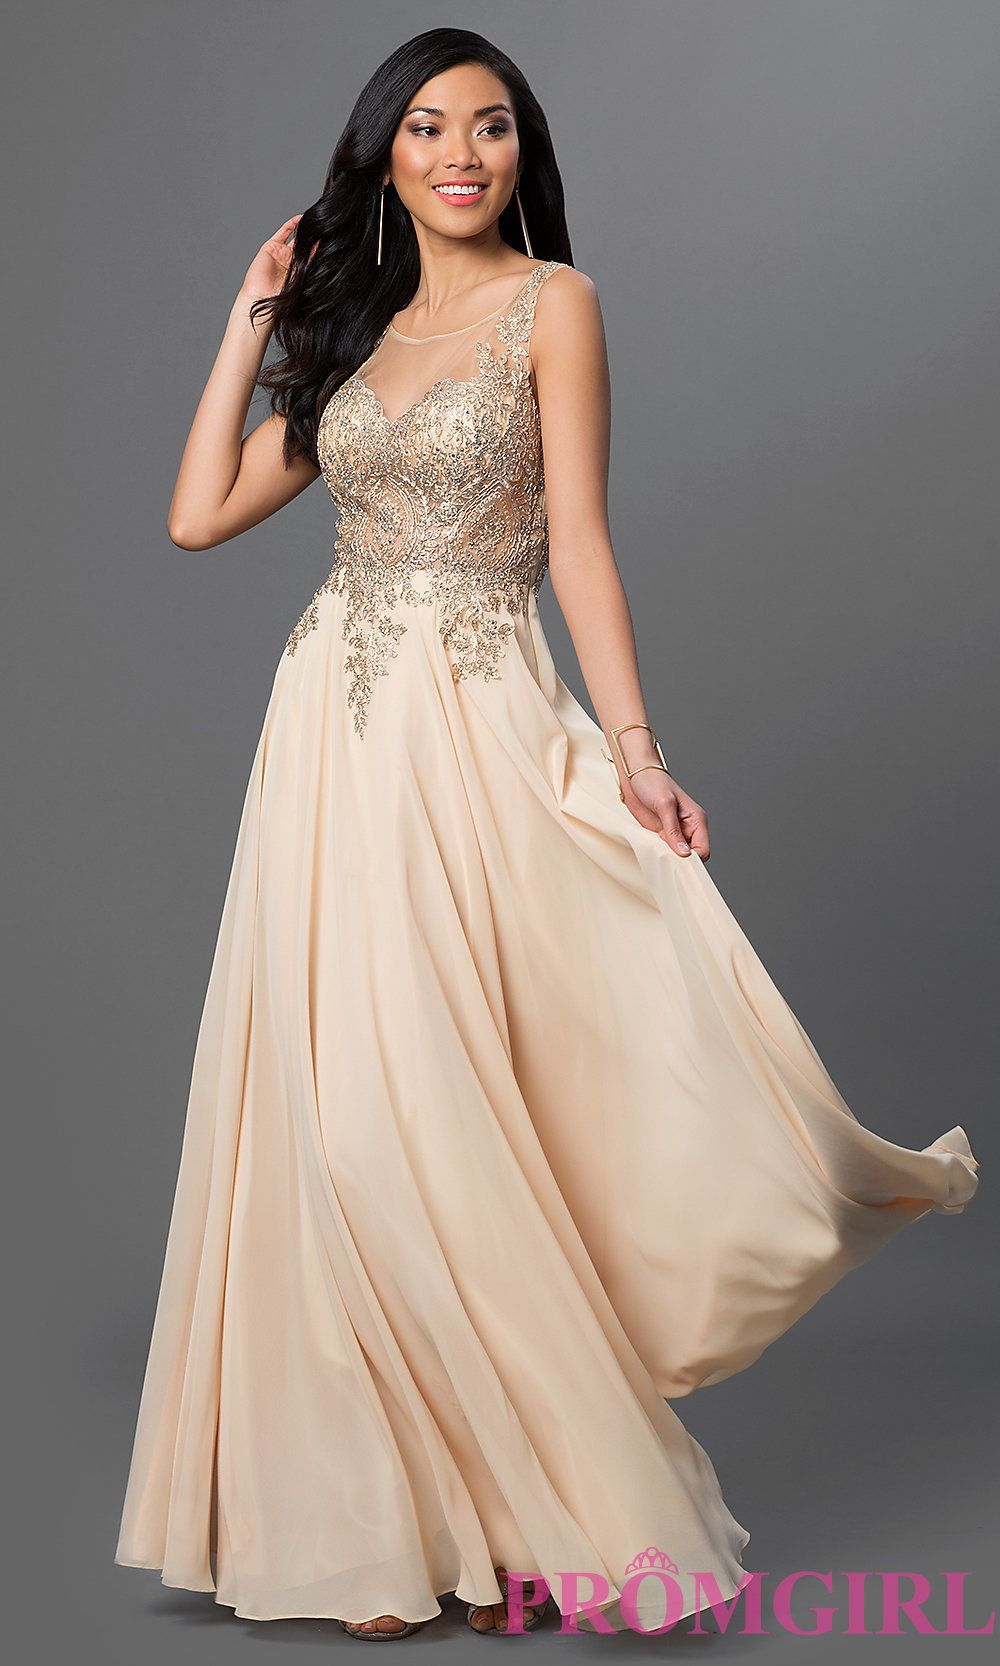 Let's Evening Gown Chiffon